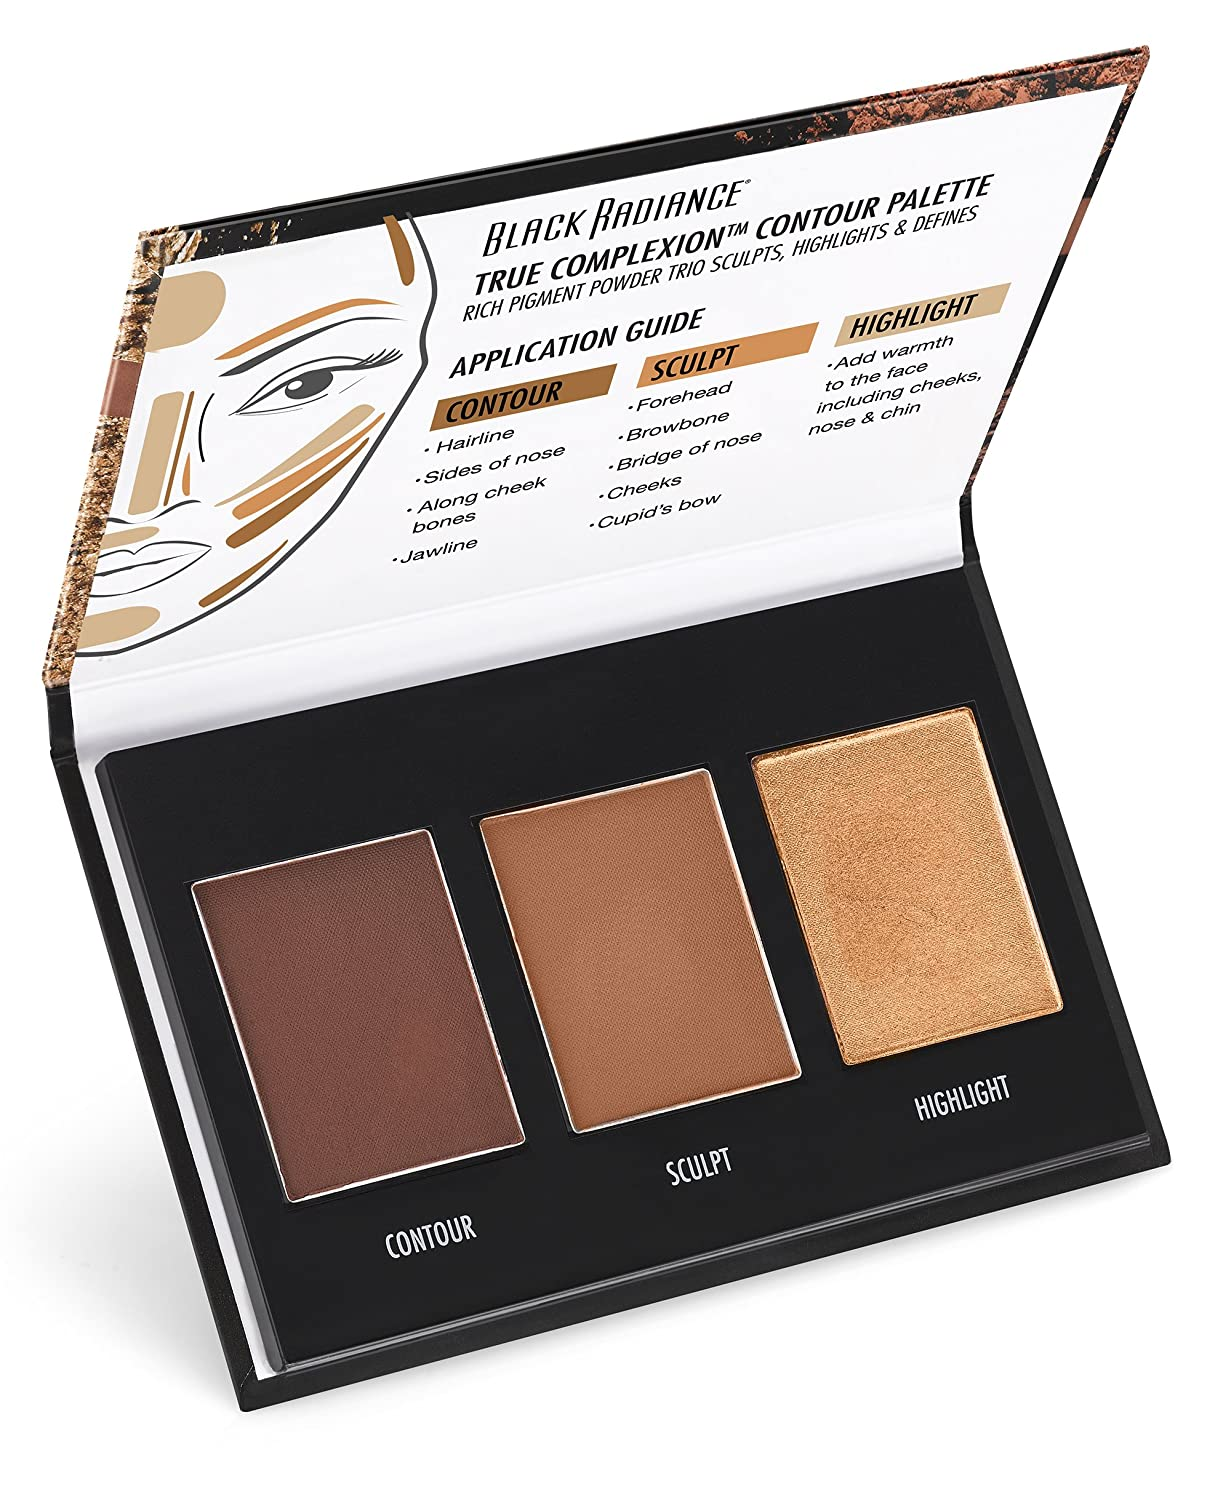 Amazon Com Black Radiance True Complexion Contour Palette Medium